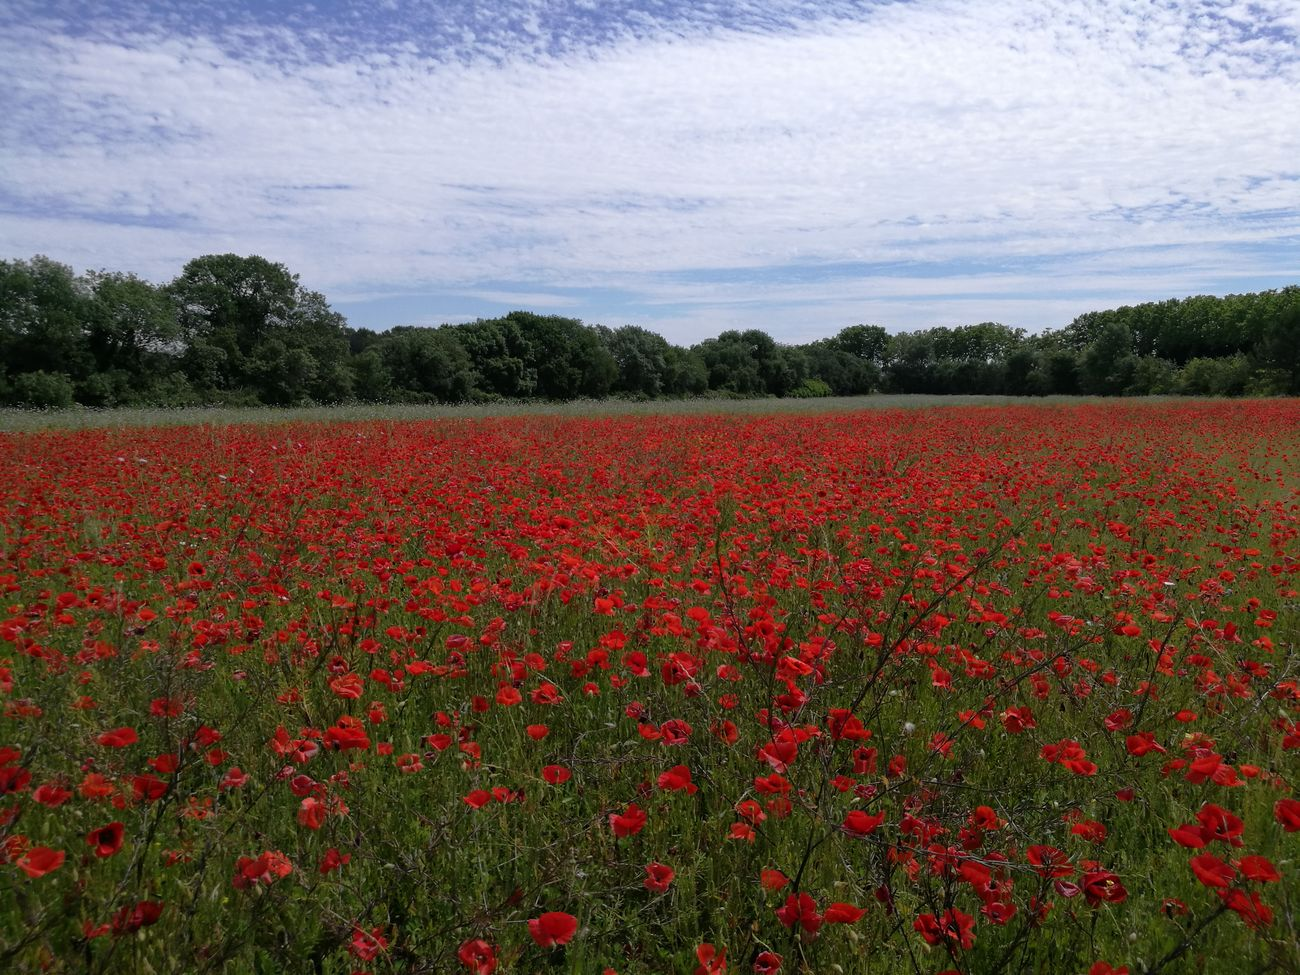 Red Nature Abundance Flower Rural Scene Field Freshness Sky Outdoors Day Tranquility Beauty In Nature Cloud - Sky Poppies  No People